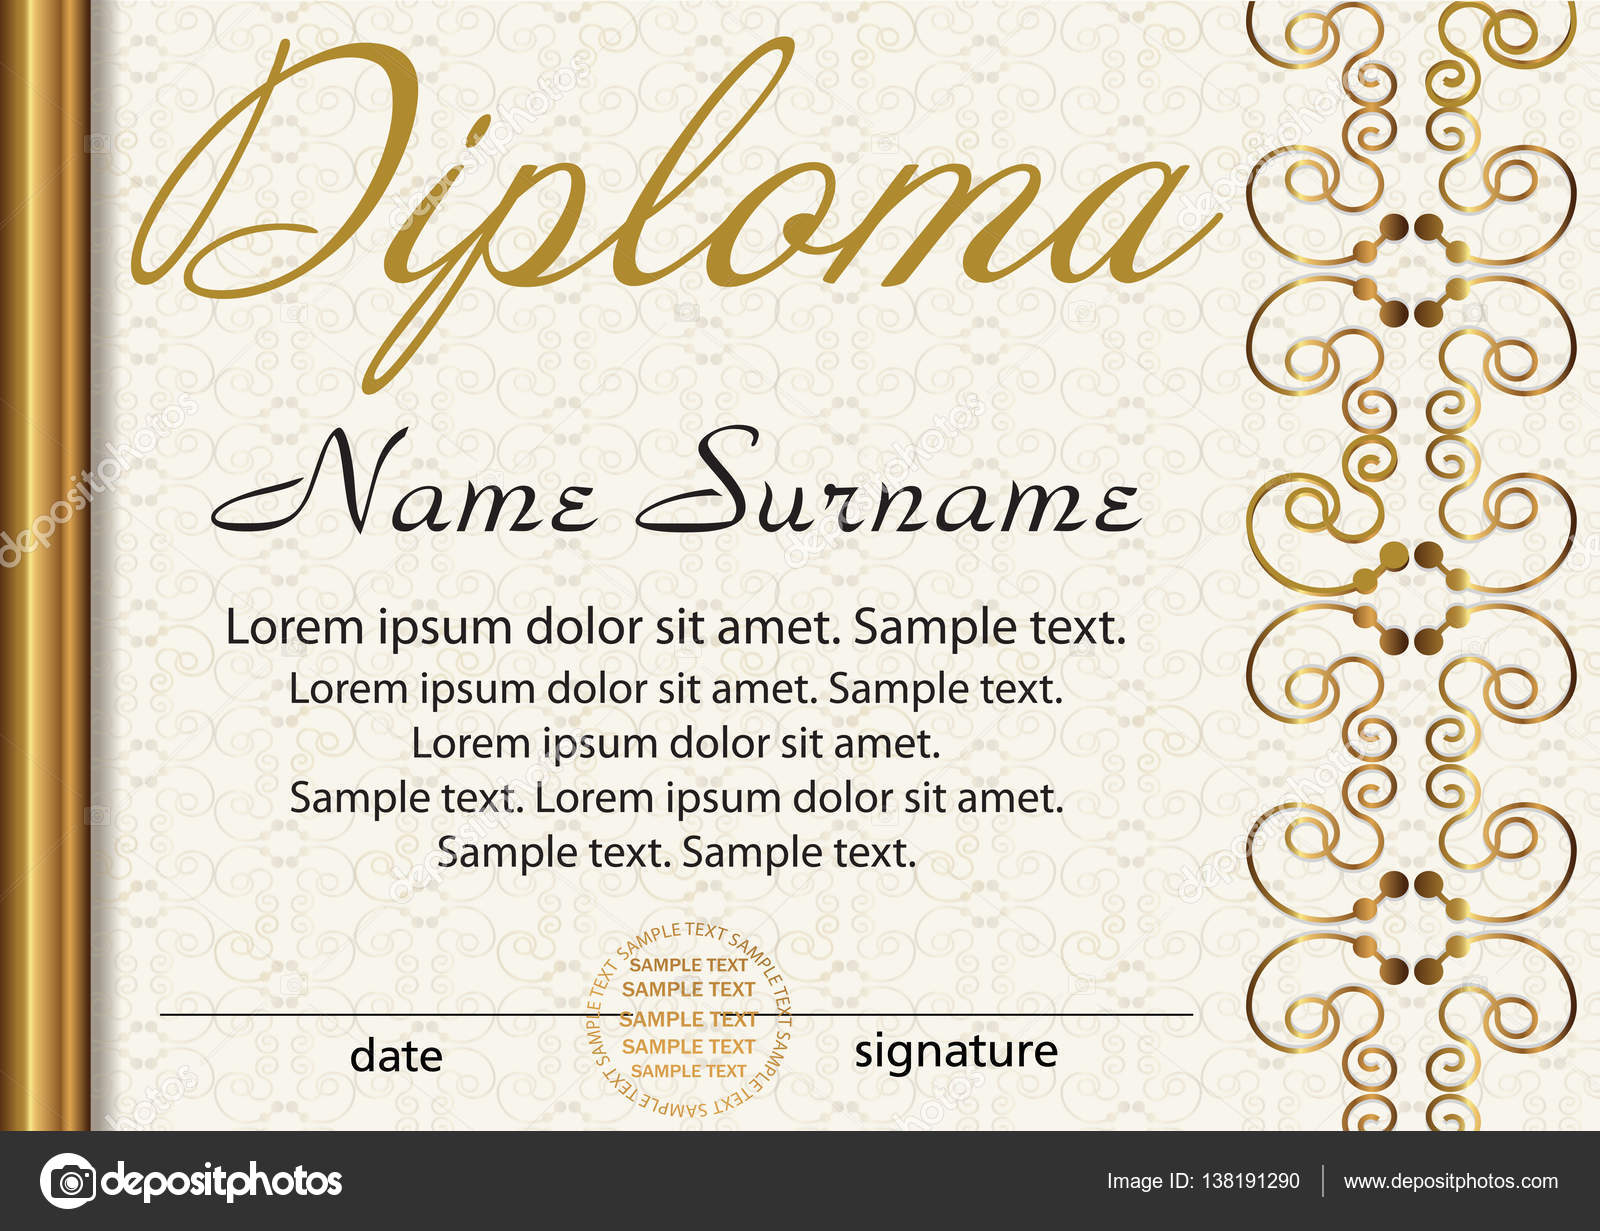 Certificate or diploma template award winner reward winning the diploma or certificate template award winner reward winning the competition elegant gold frame with an ornament vector illustration yelopaper Choice Image